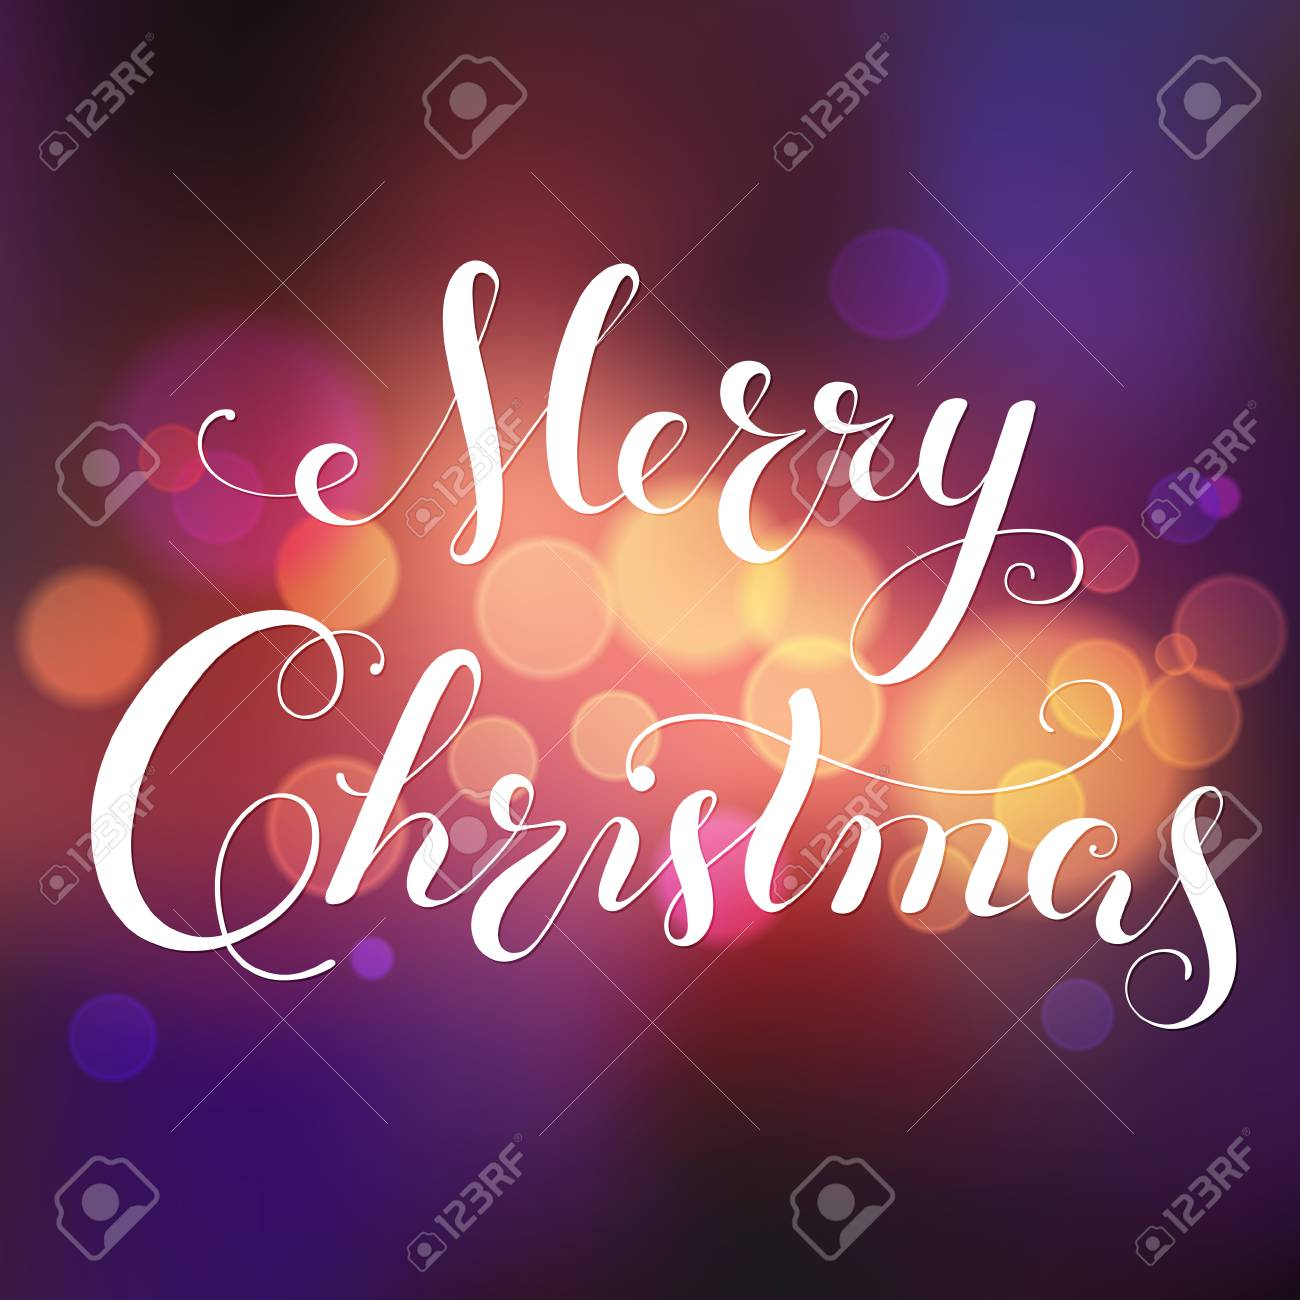 Merry Christmas calligraphy lettering. greeting card with bokeh background, blurred festive lights. Vector. - 88188308